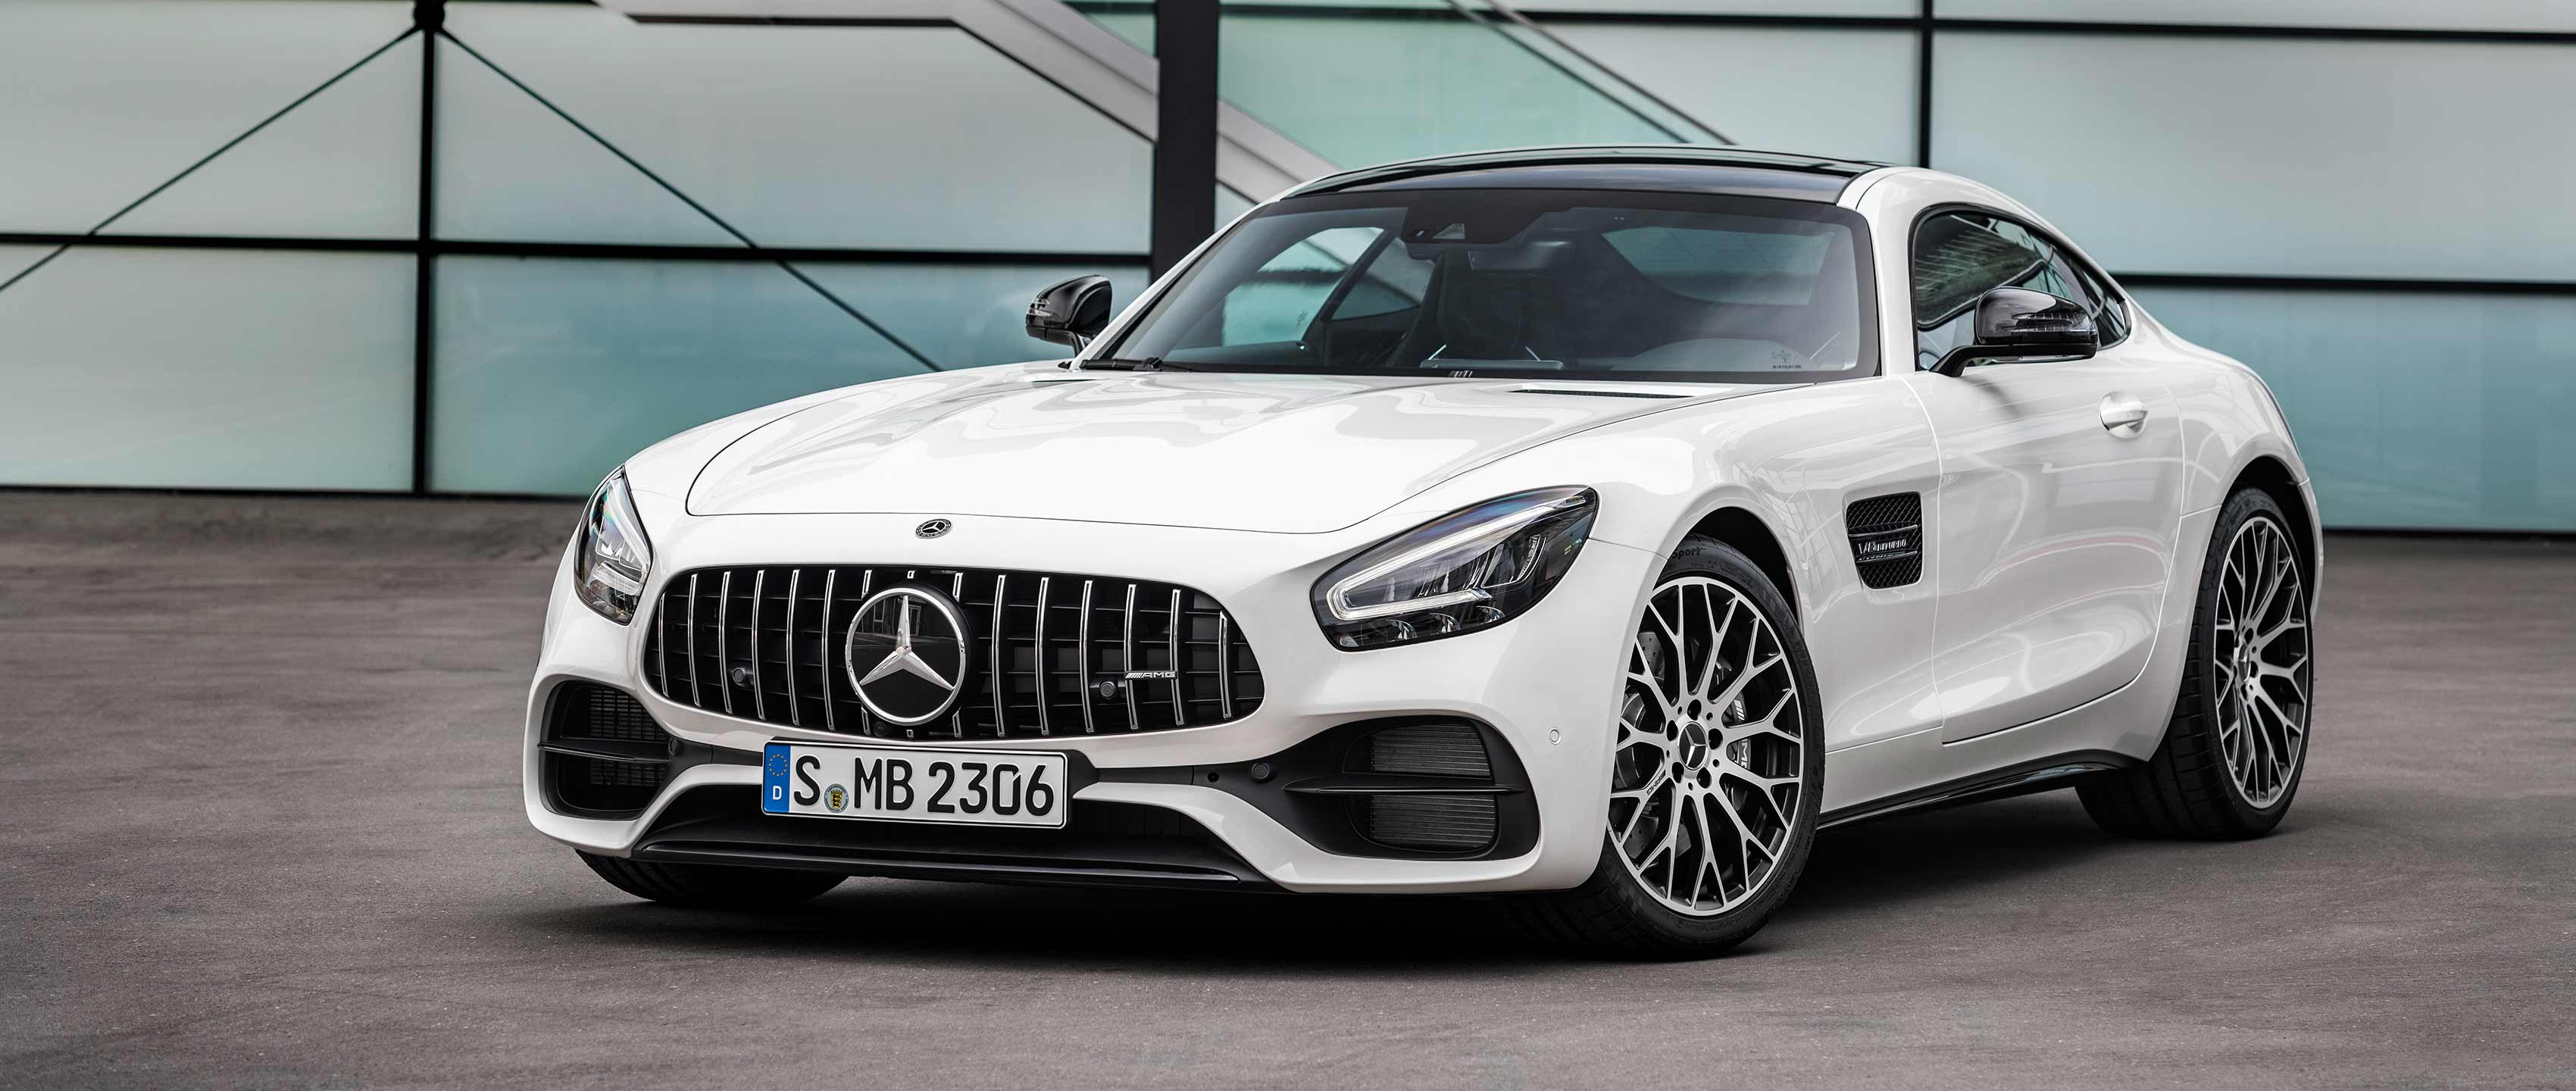 31 A Mercedes Amg Gt 2019 Release Date